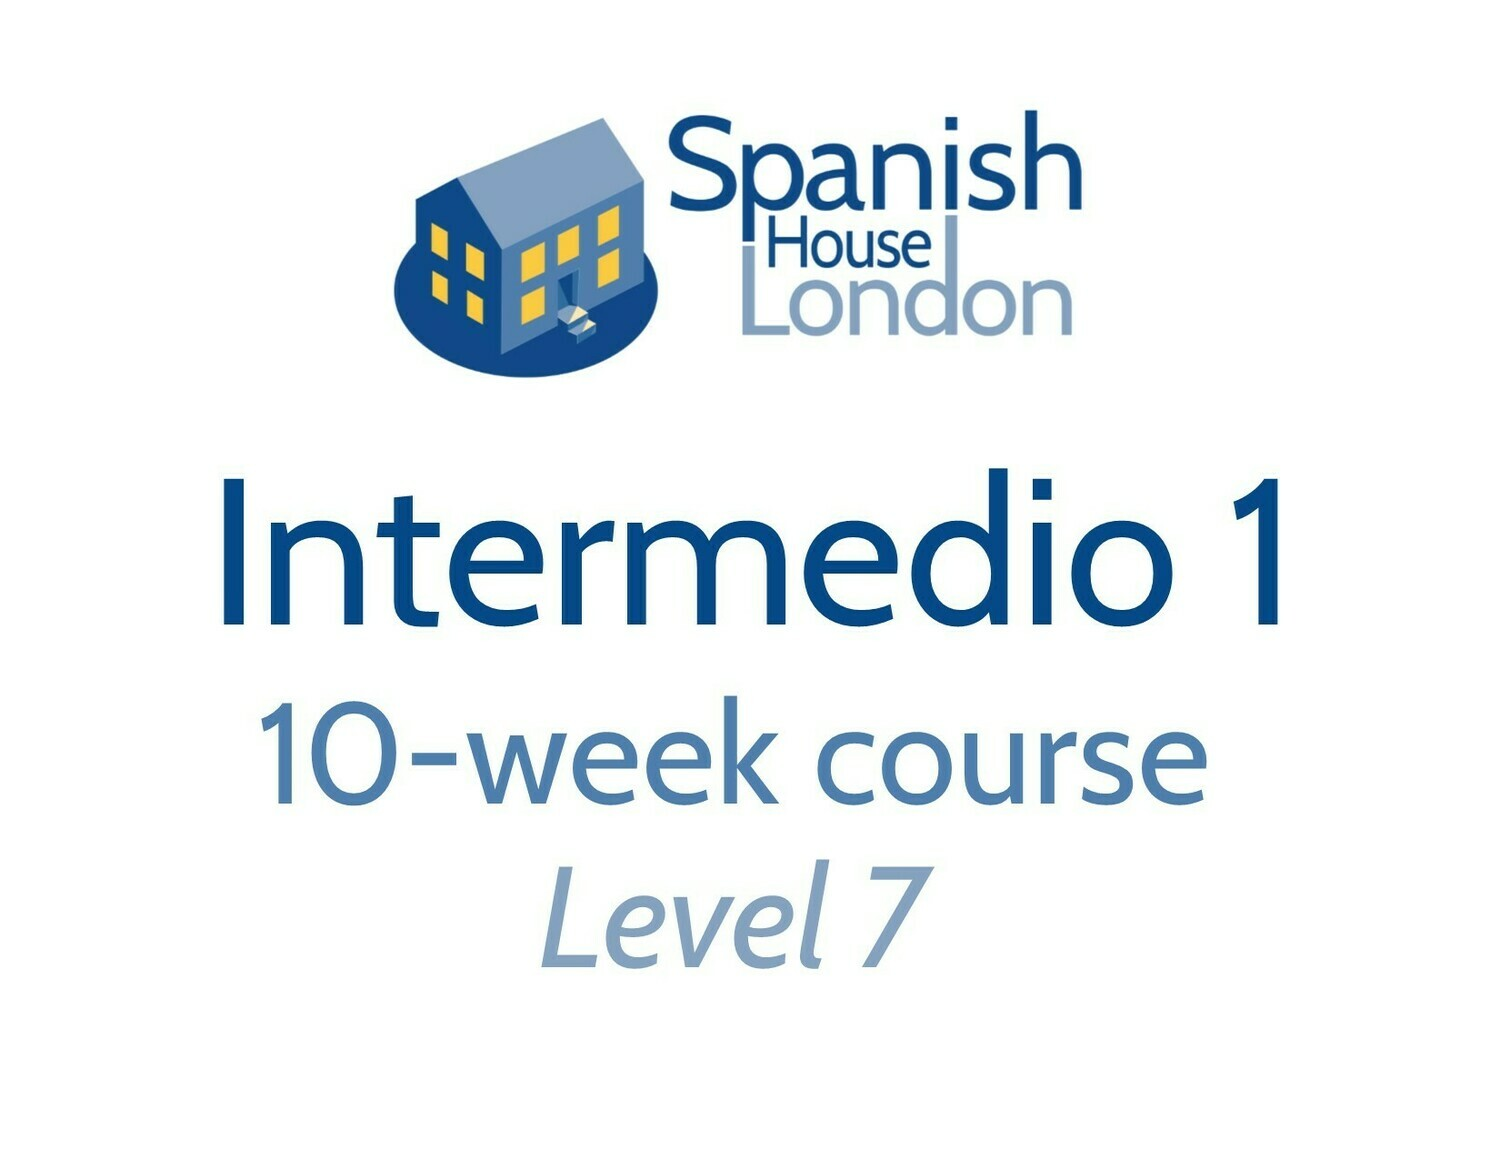 Intermedio 1 Course starting on 18th March at 7.30pm